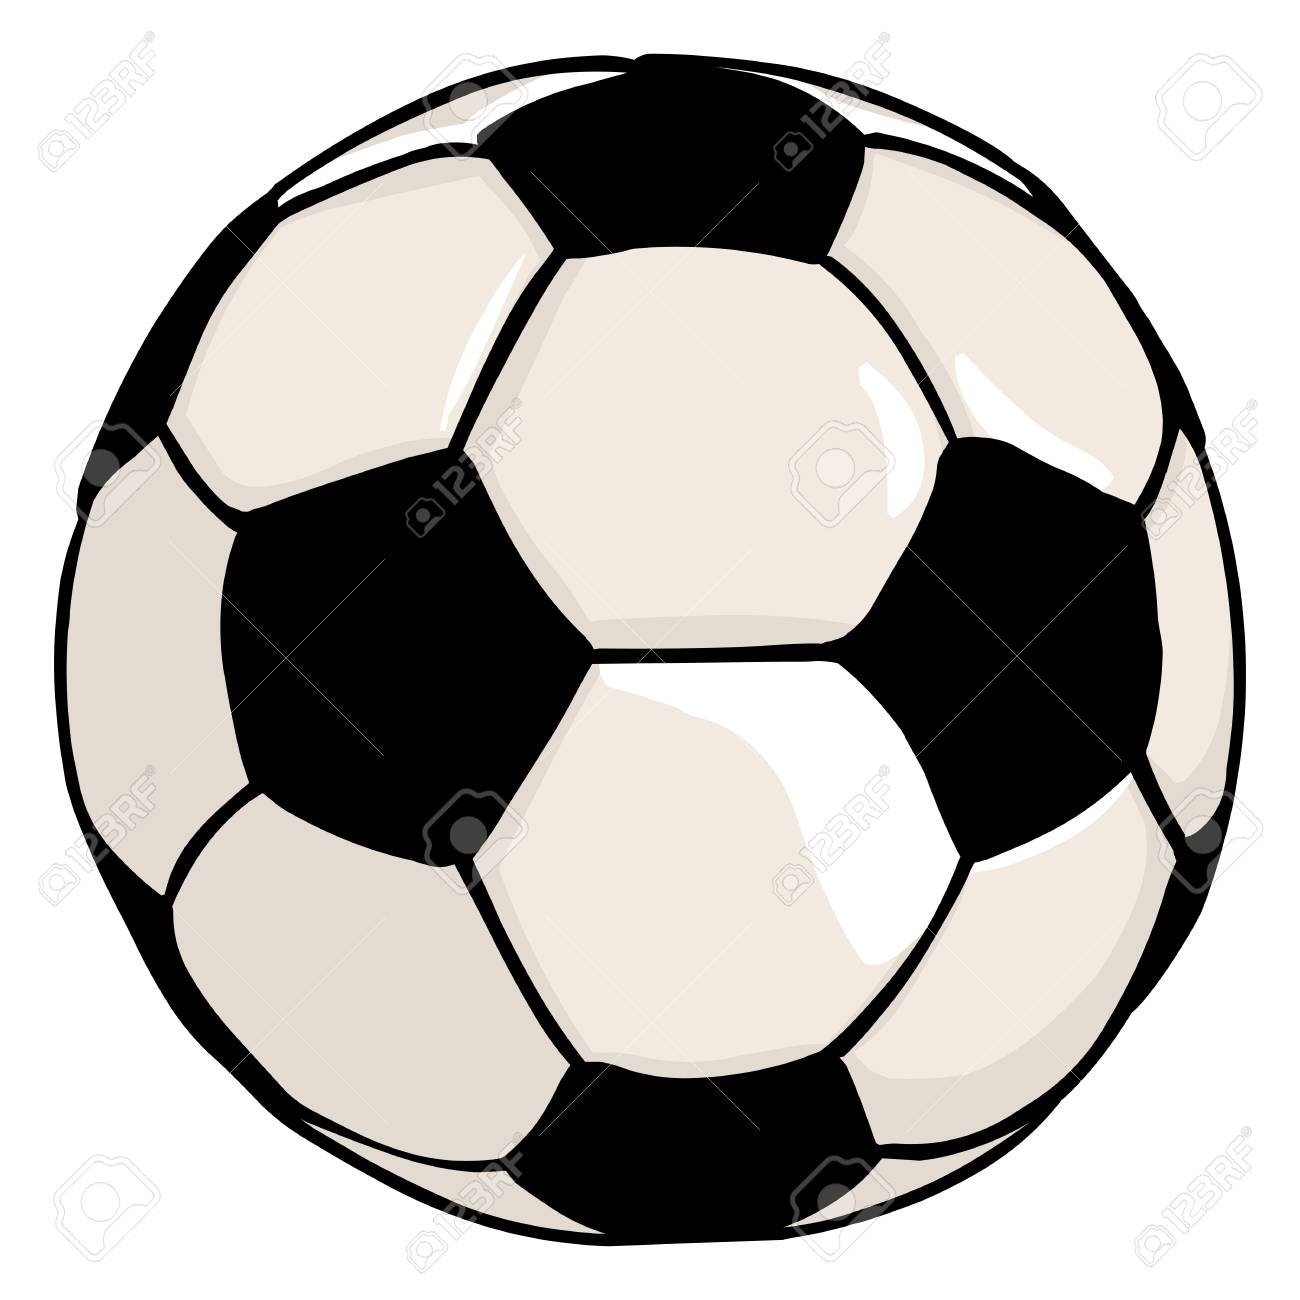 vector single cartoon soccer ball on white background royalty free rh 123rf com soccer victory predictions soccer victory predictions